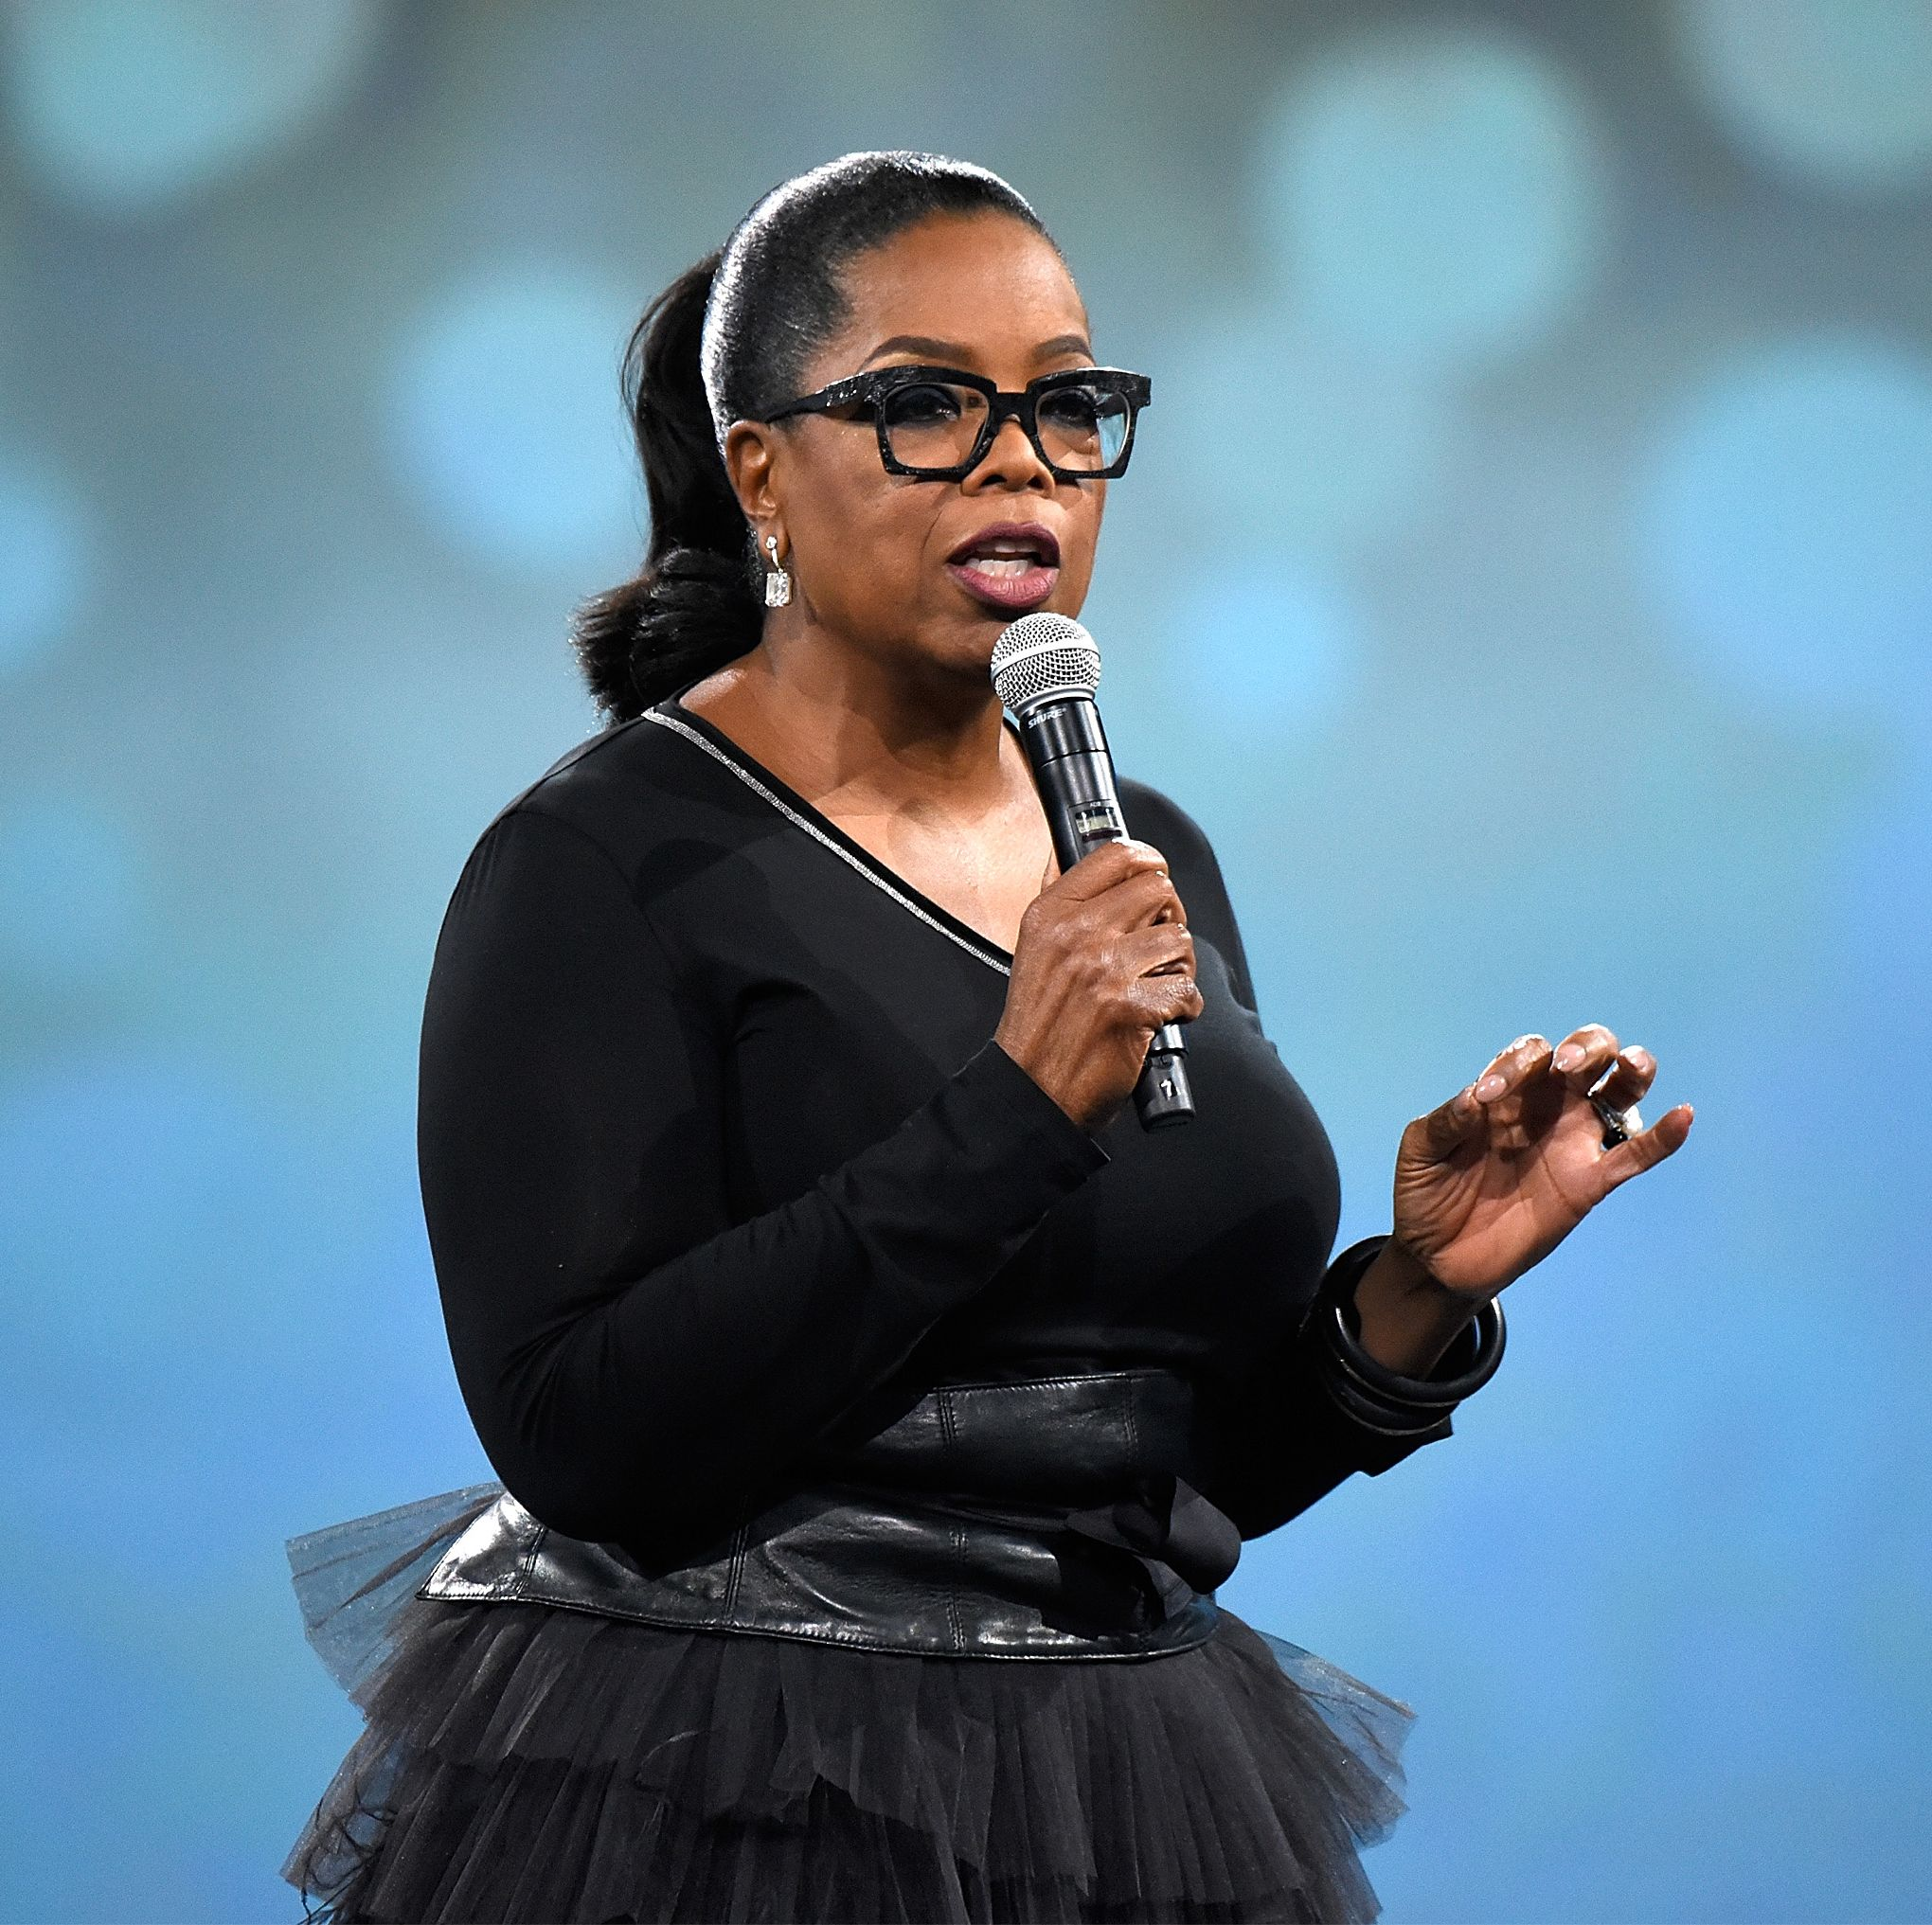 Oprah Talks Overcoming Fear and Finding Her Calling in The Path Made Clear, Her New Book